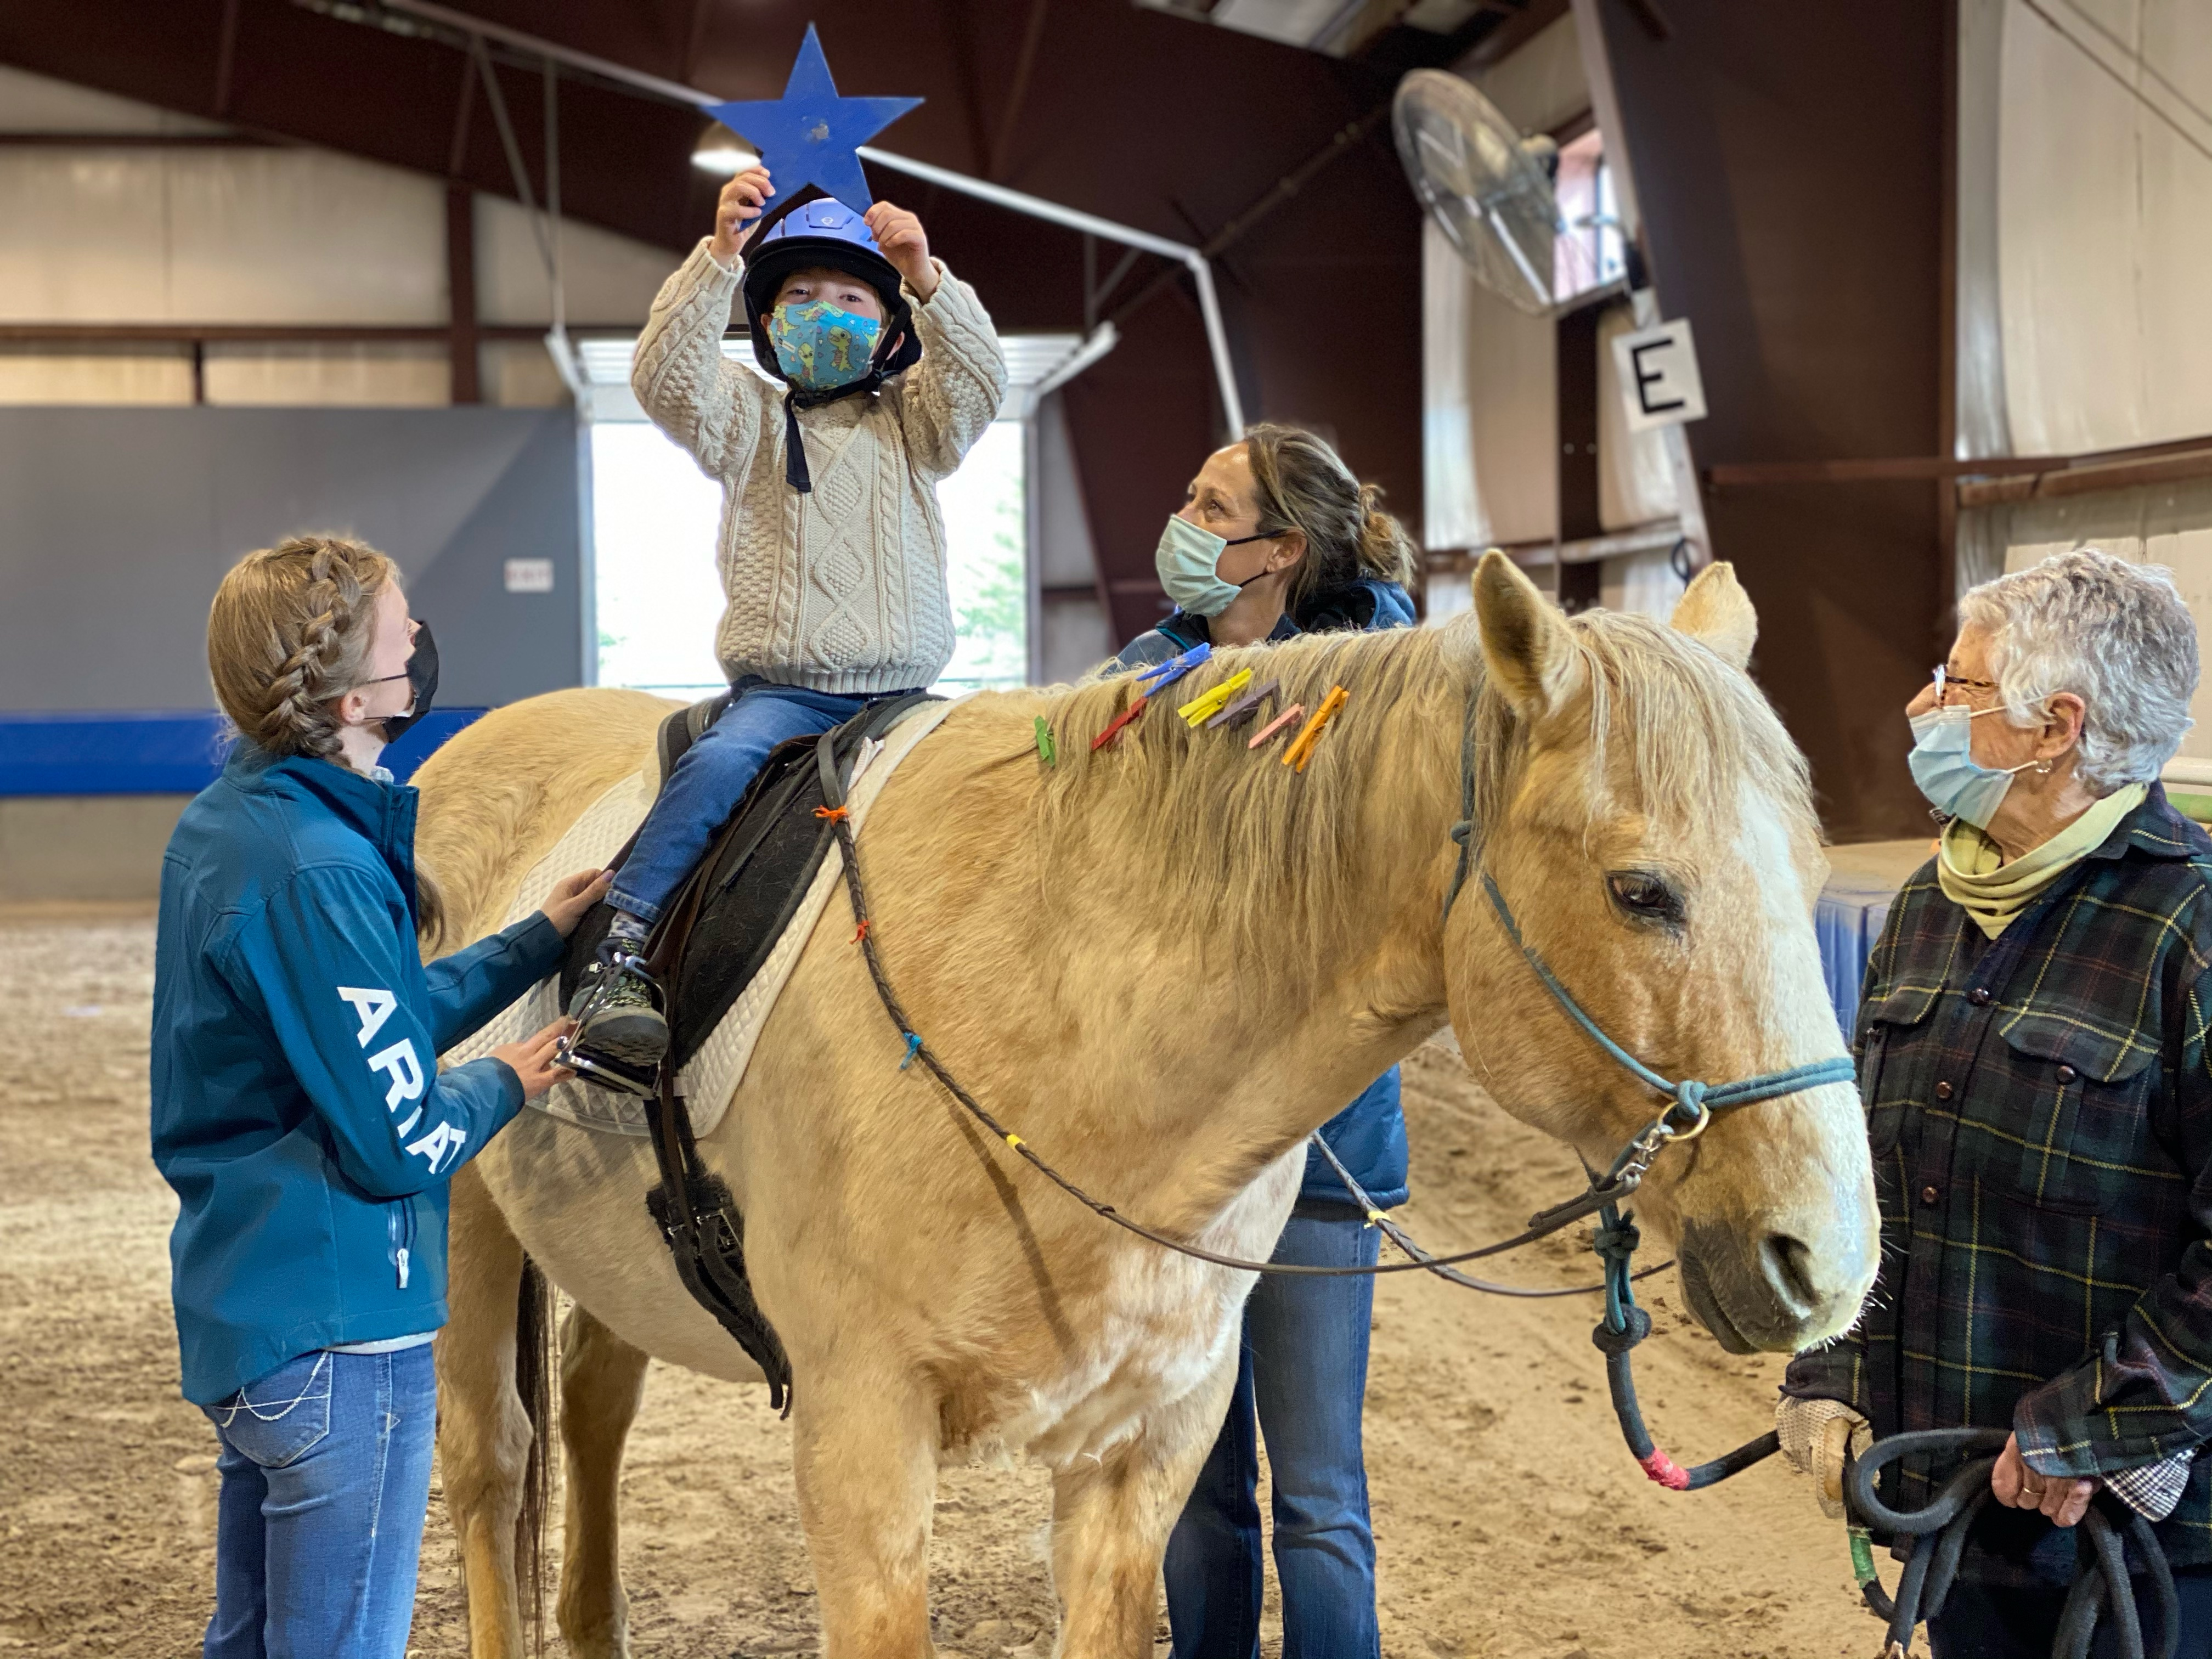 BACK IN THE SADDLE A MONTH-LONG PHOTO COMPETITION & FUNDRAISER SUPPORTINGJACKSON HOLE THERAPEUTIC RIDING